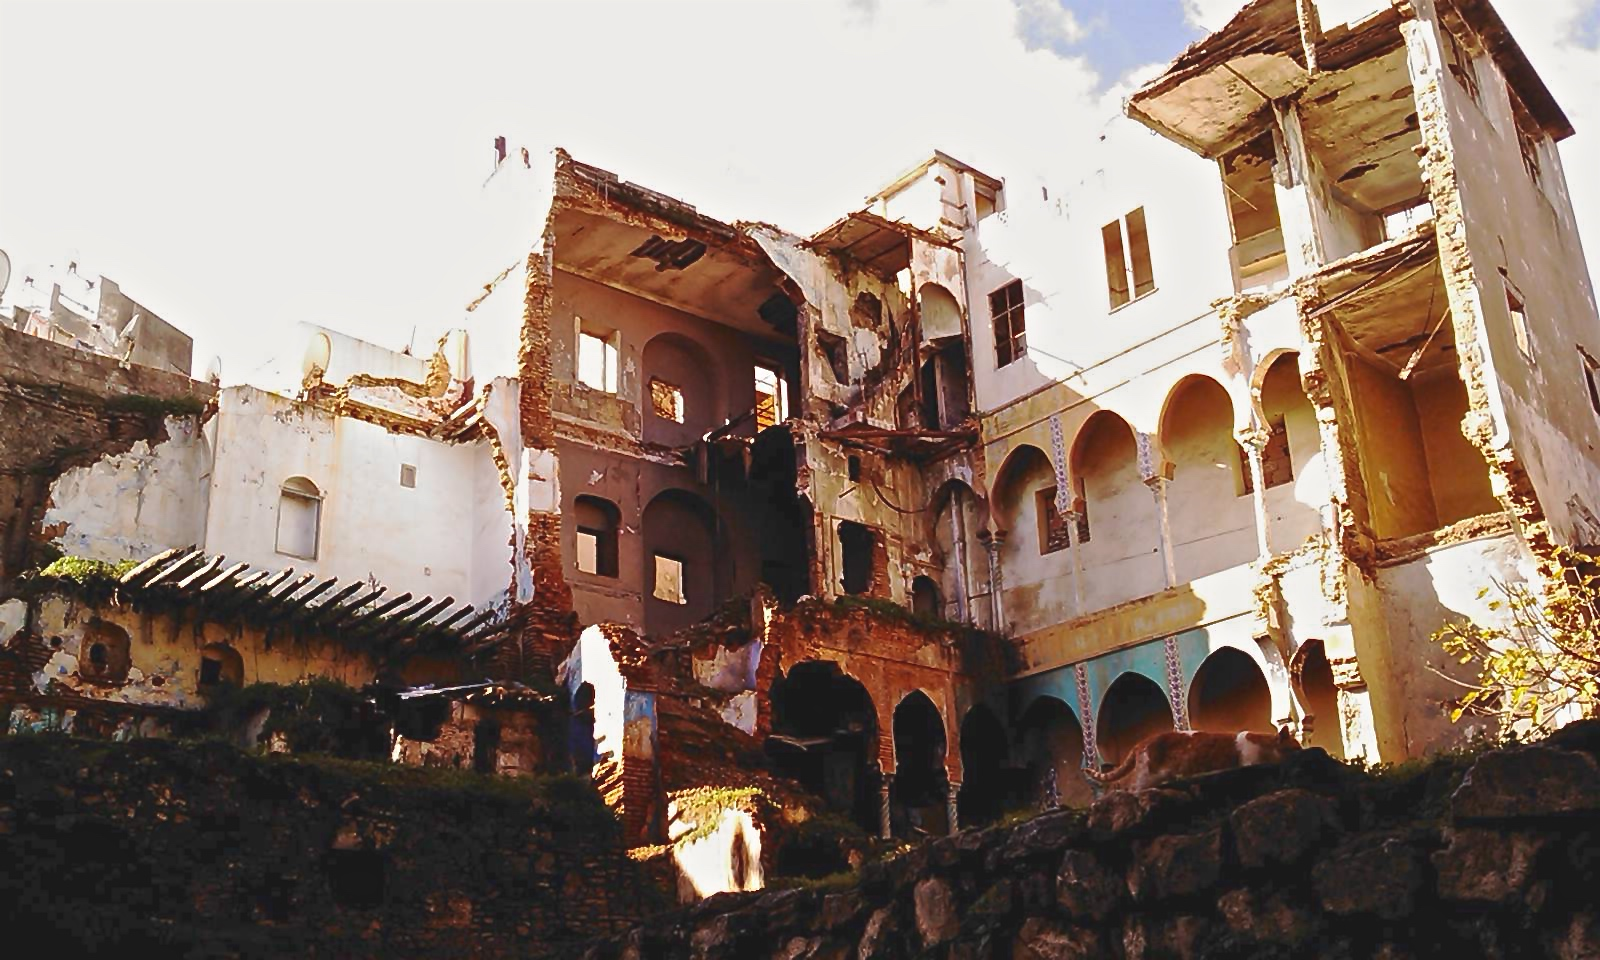 Section of Algerian Casbah after French dynamiting, Oct. 8, 1957. (Wikimedia)